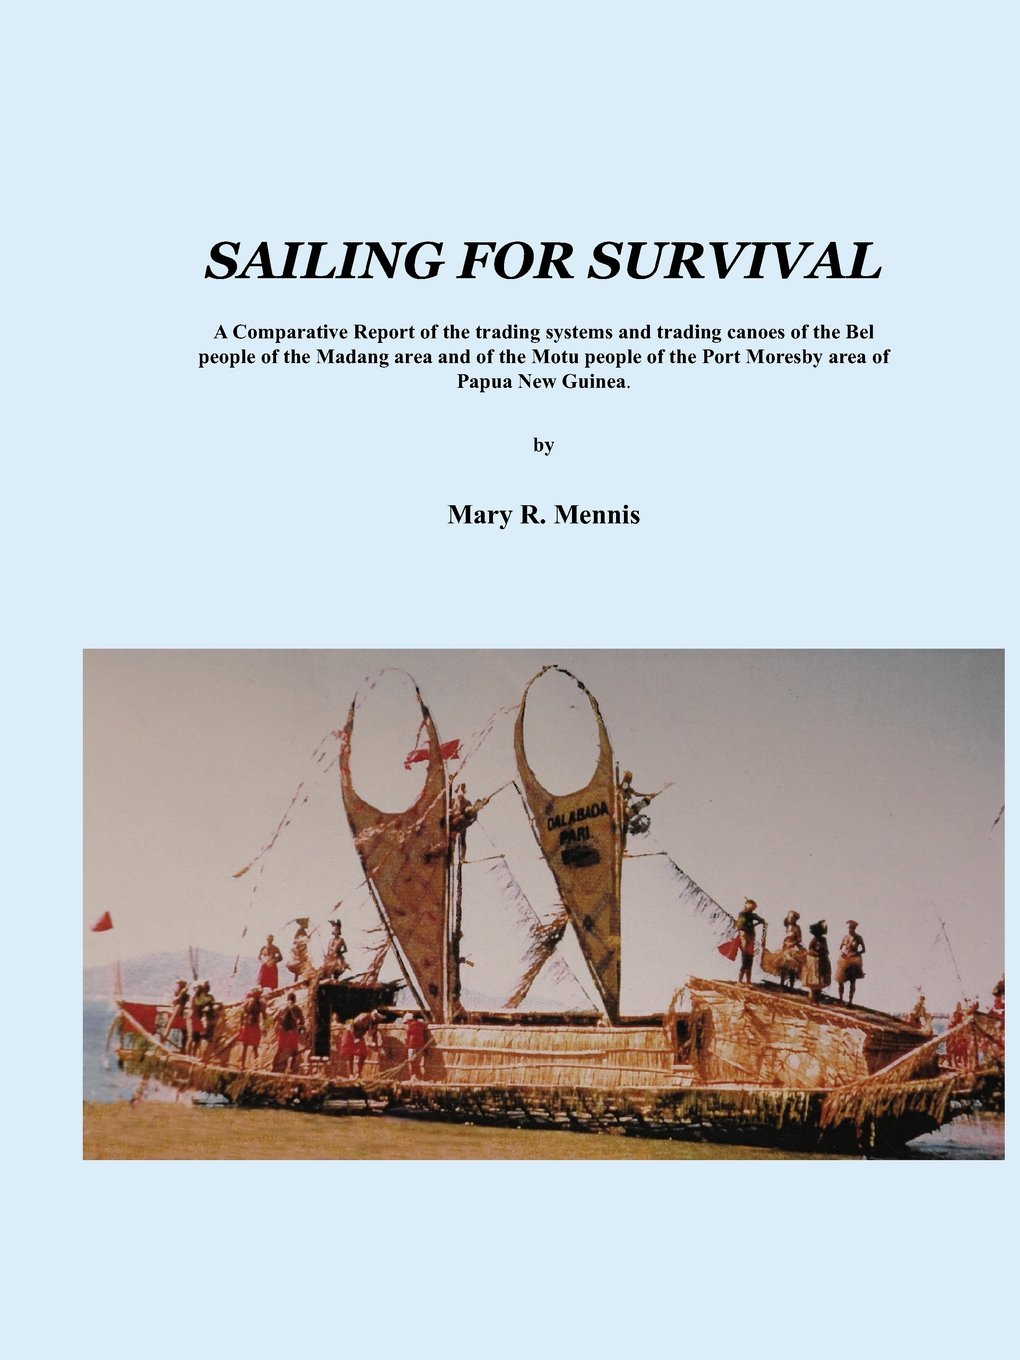 Sailing for Survival: A Comparative Report of the Trading Systems and Trading Canoes of the Bel People in the Madang Area and of the Motu People in the Port Moresby Area of Papua New Guinea